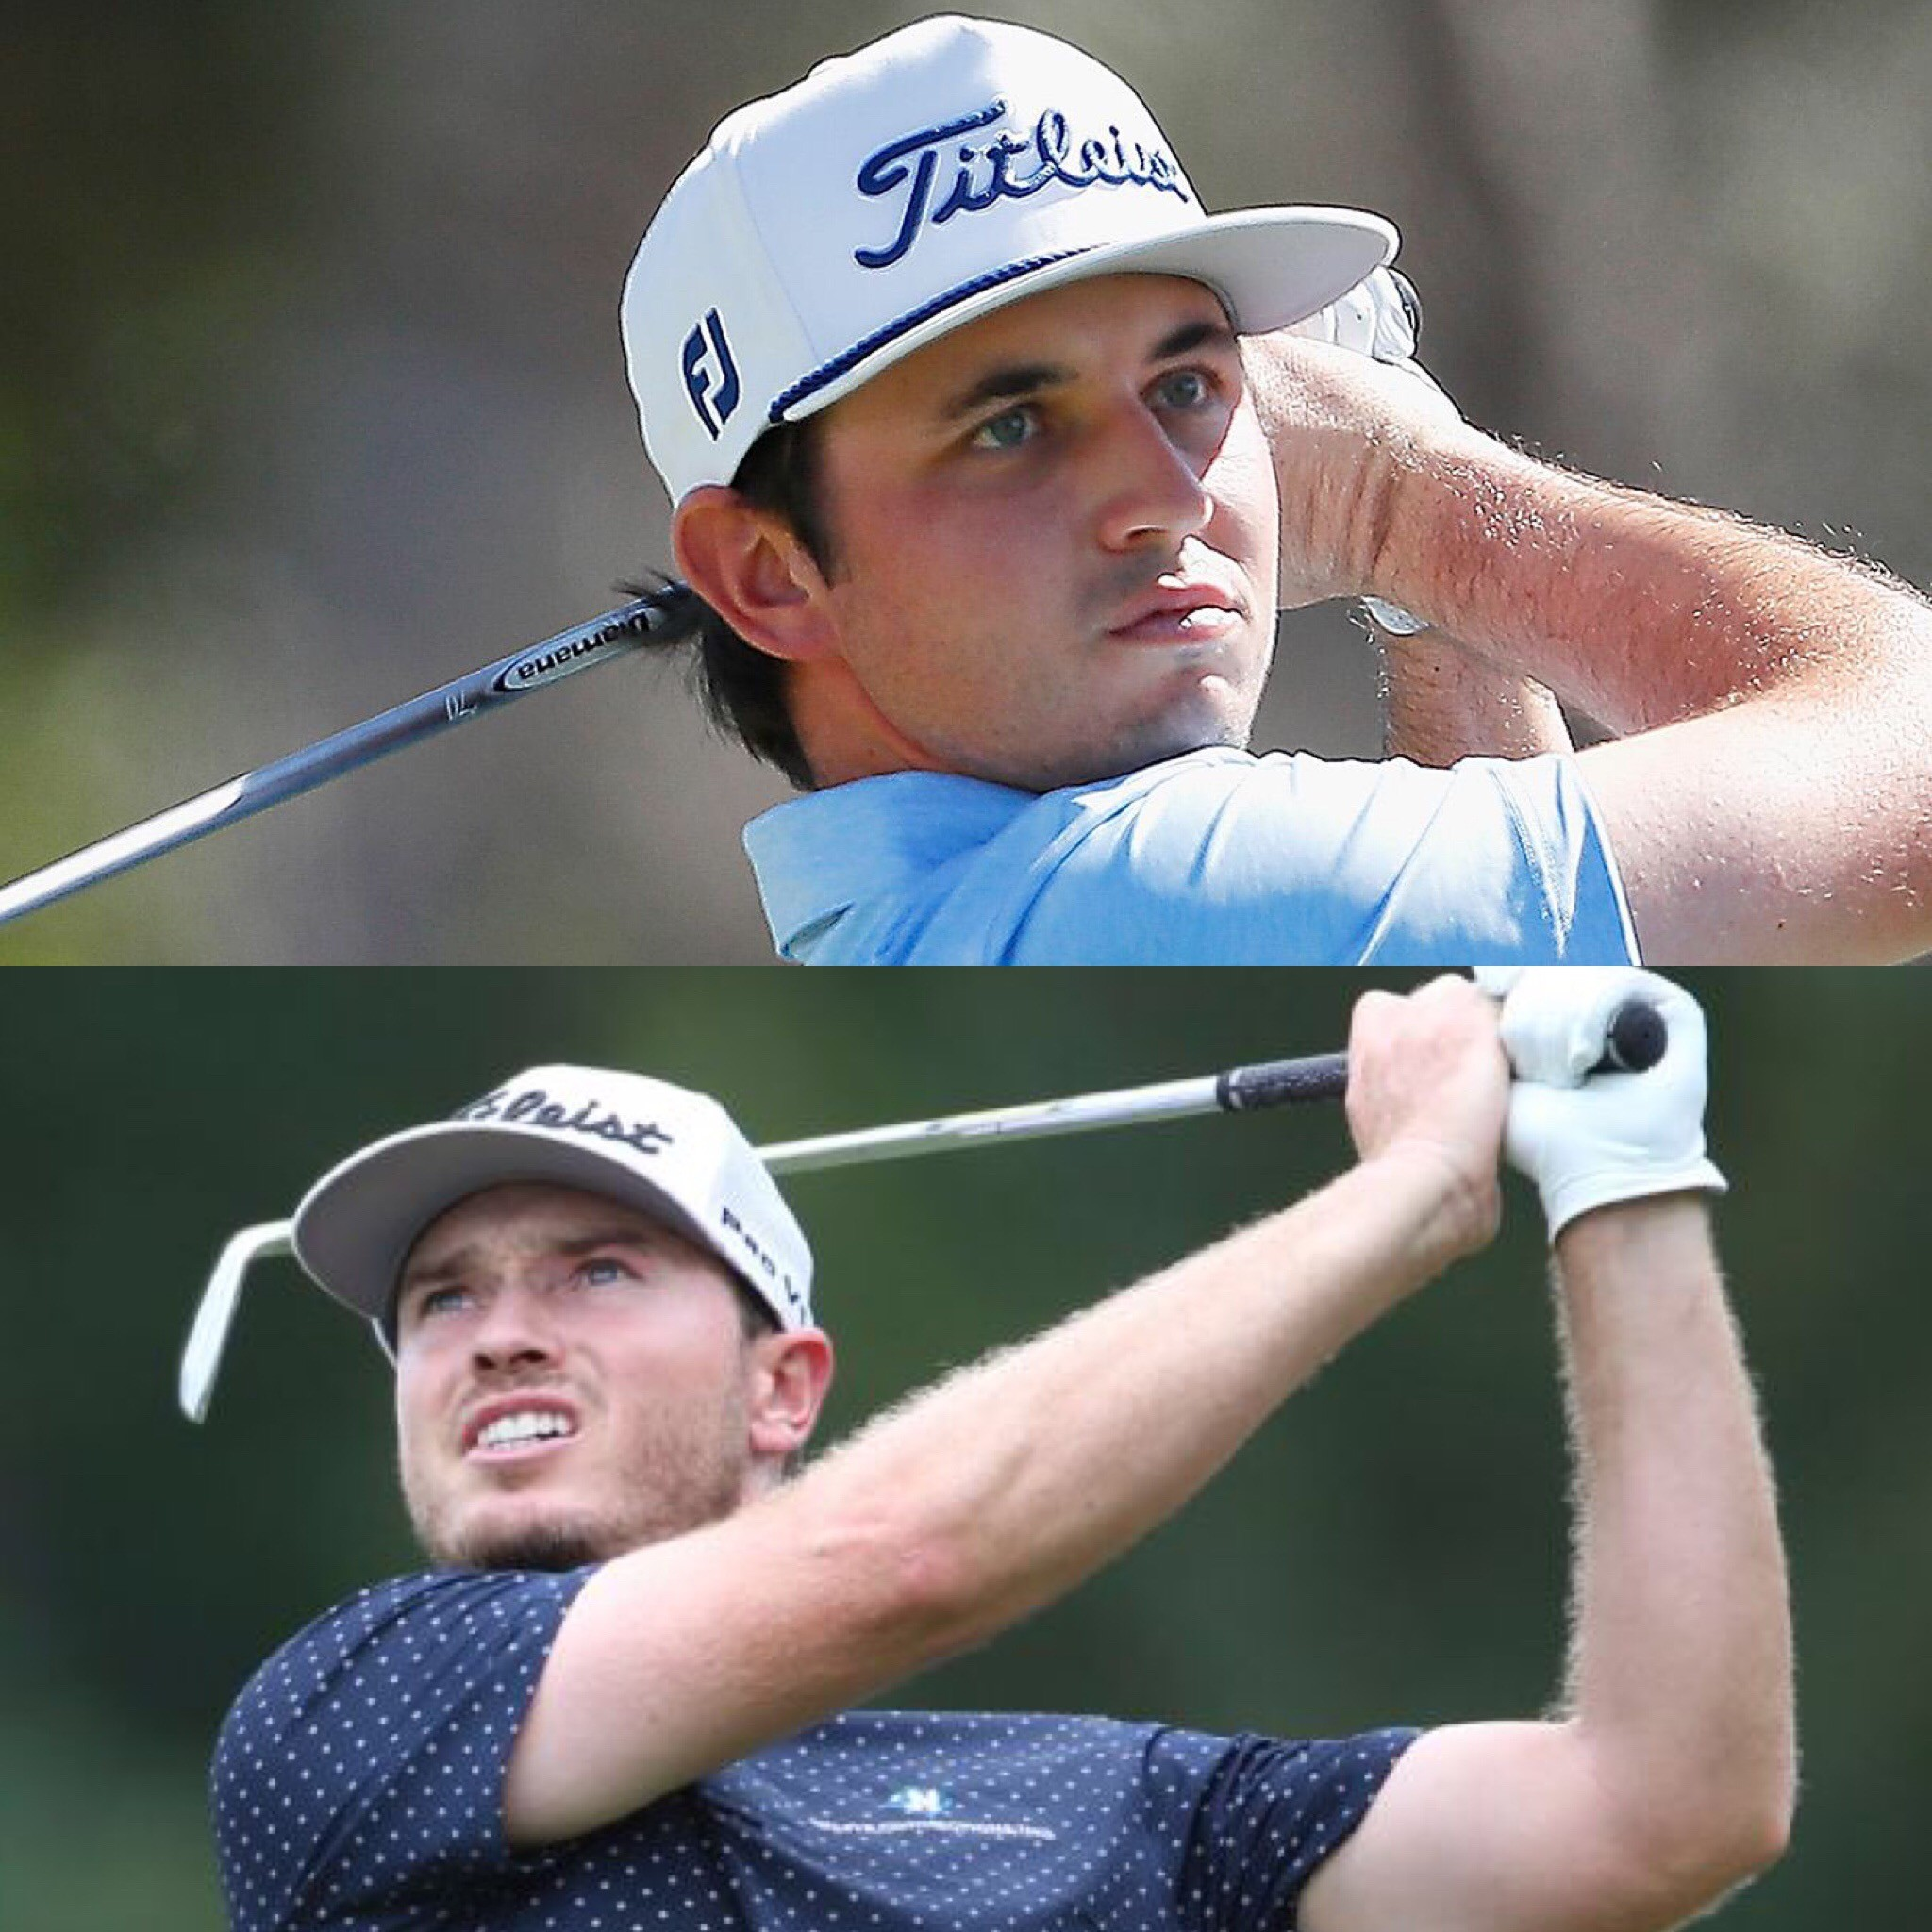 THE PLAYERS Championship 2019 - J.T. Poston & Bronson Burgoon